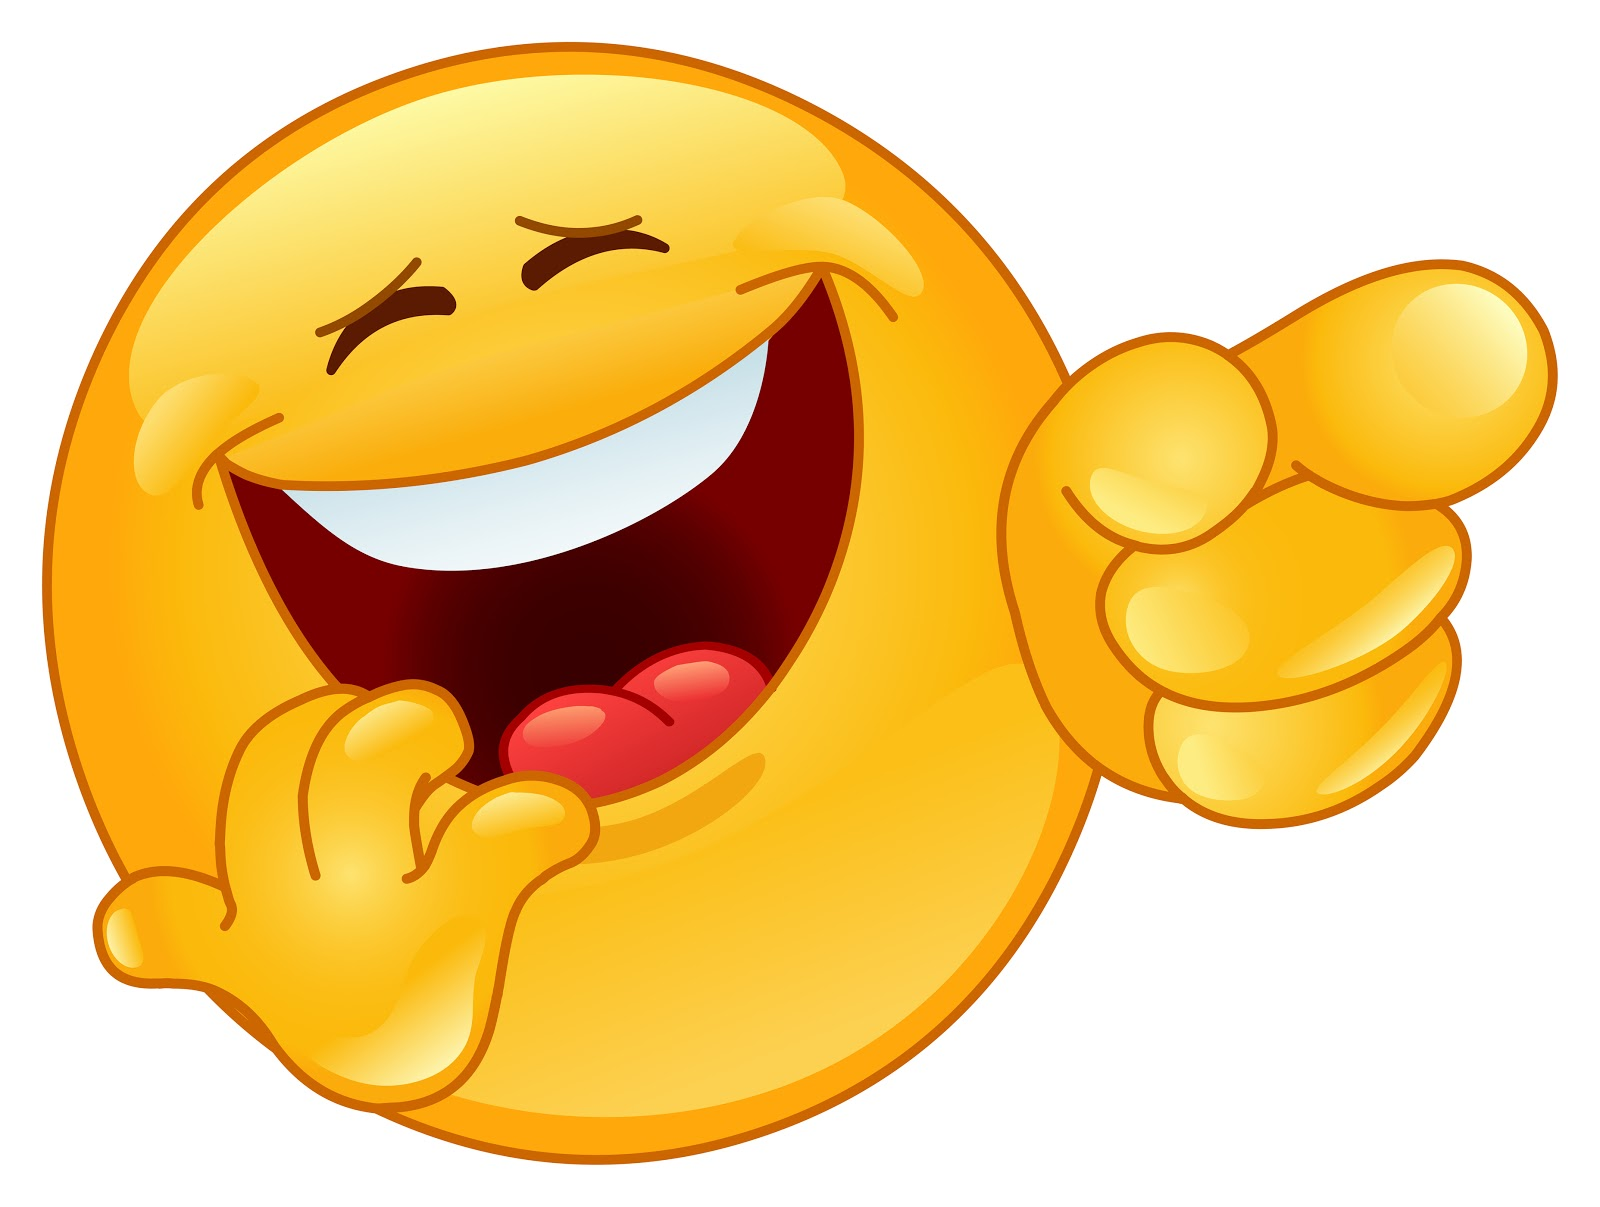 Laughing Face Clip Art Clipar - Laughing Clipart